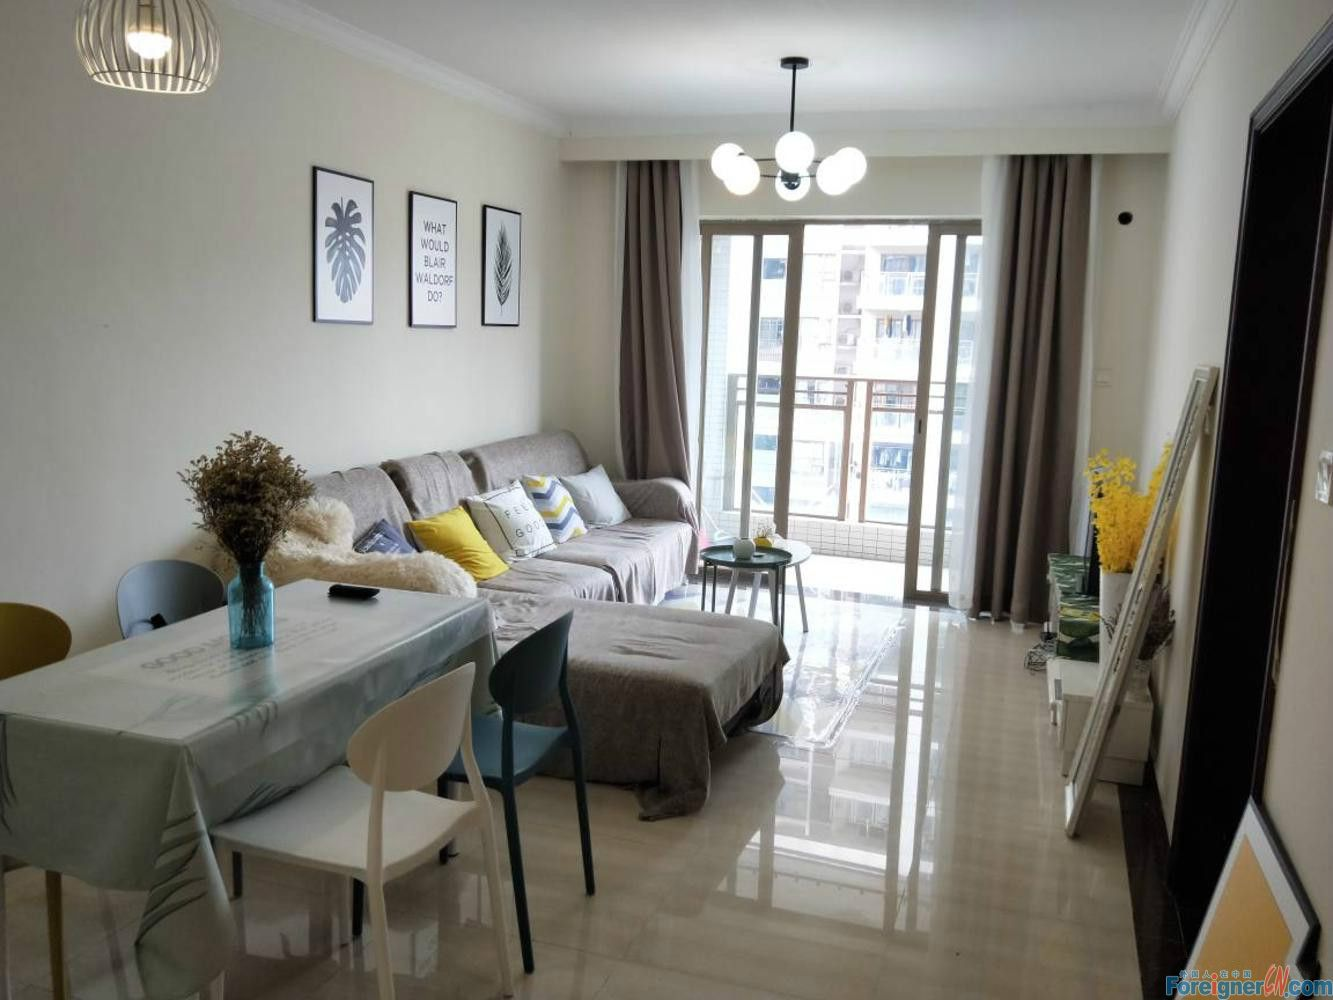 Liede Garden-nice 2brs in liede of CBD area,good layout,good location,walking 10mins to liede metro station.